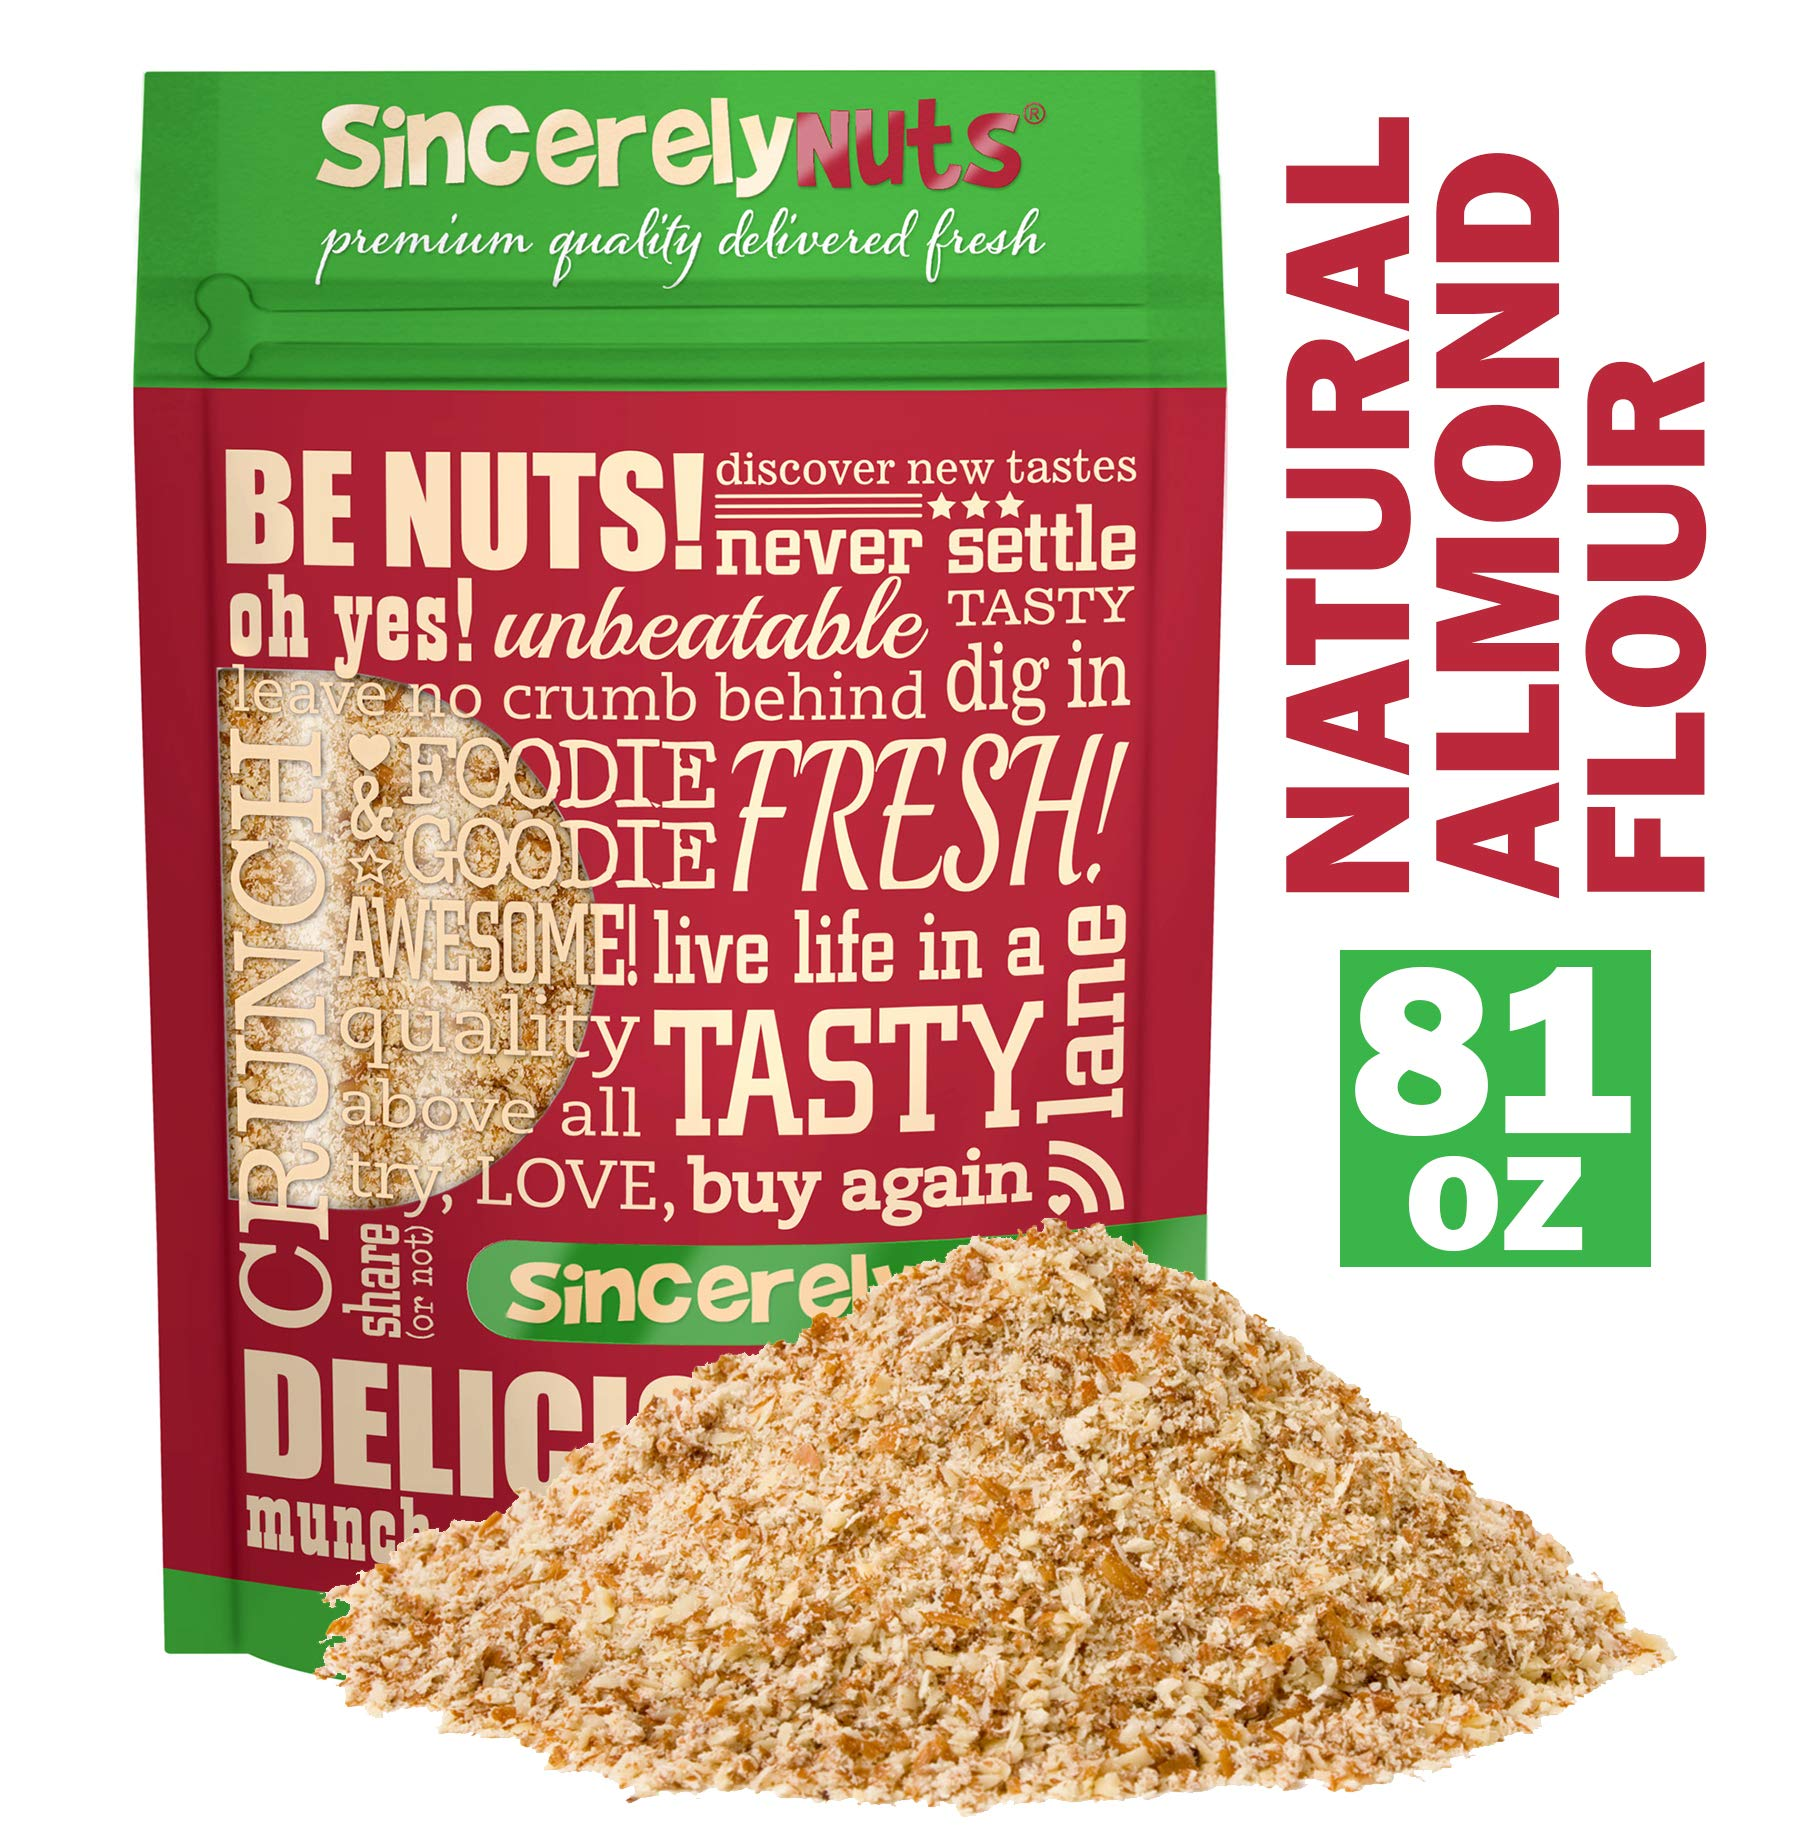 Sincerely Nuts - Natural Almond Flour Meal   5 Lb. Bag   Fine Grain   Low Calorie, Low Sodium, Vegan, Gluten Free   Gourmet Kosher Snack Food   Source of Fiber, Protein, Vitamins and Minerals by Sincerely Nuts